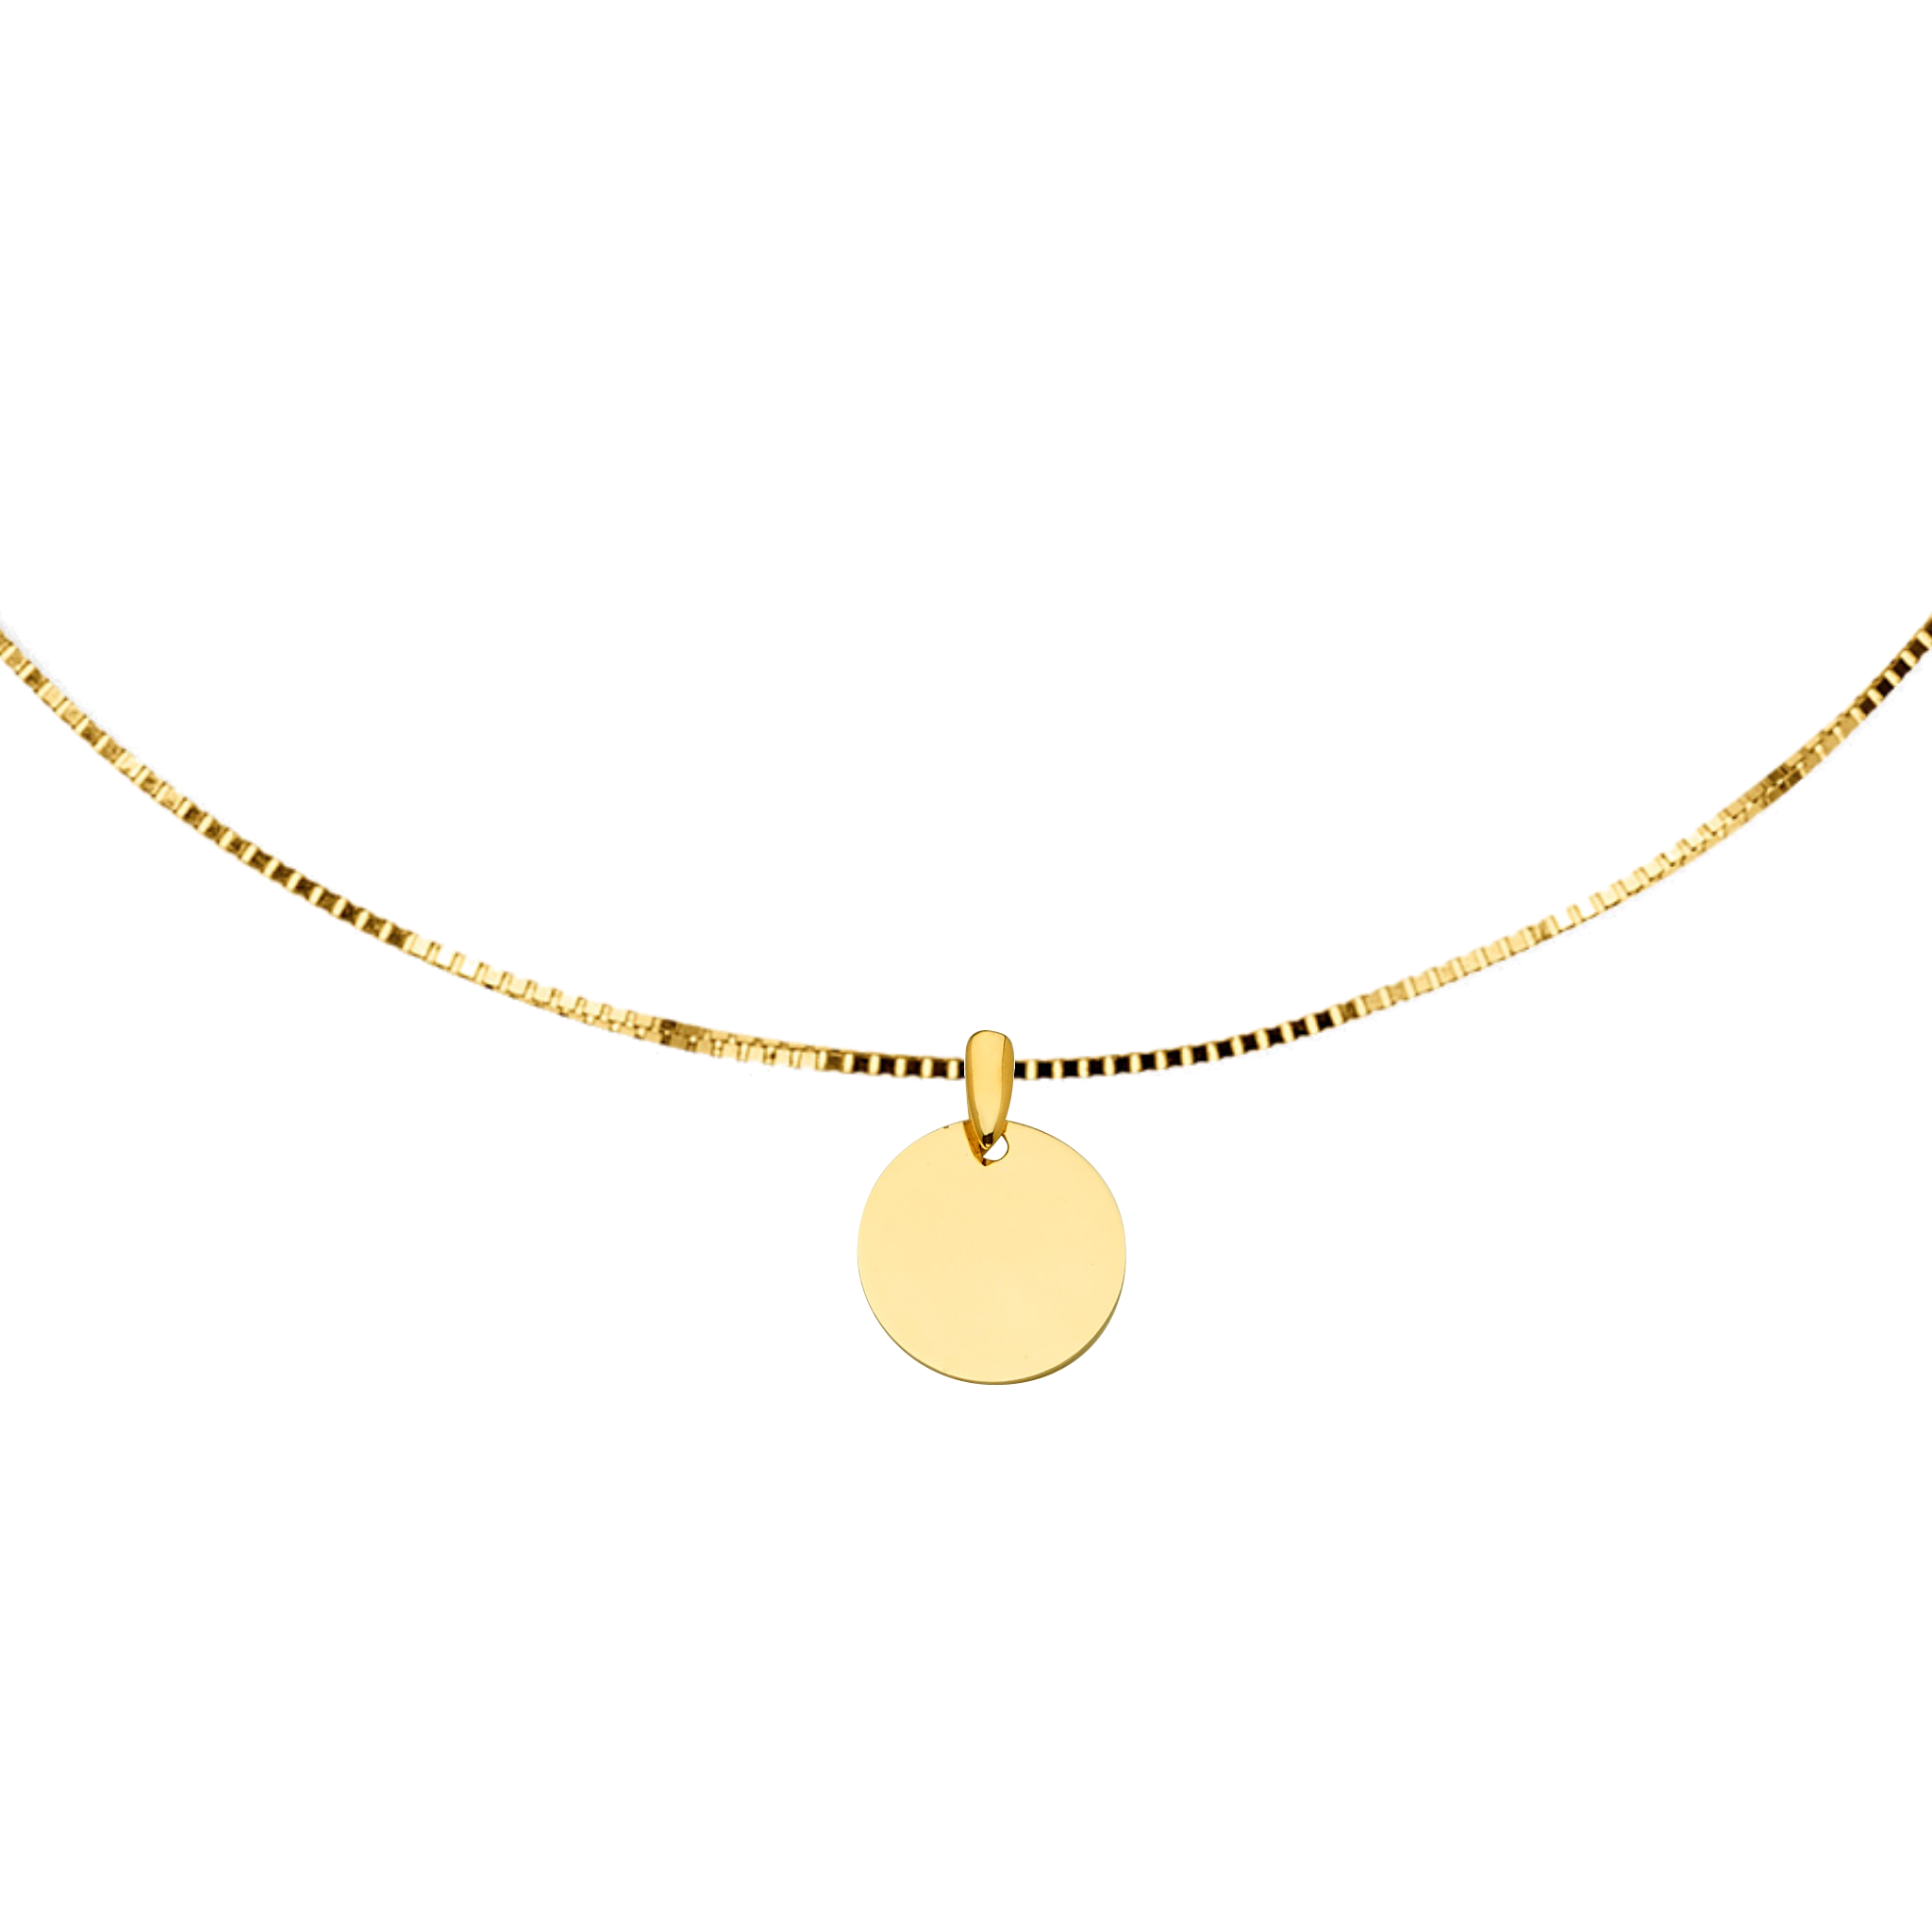 Engravable Round Medal Choker - 14K Solid Yellow Gold